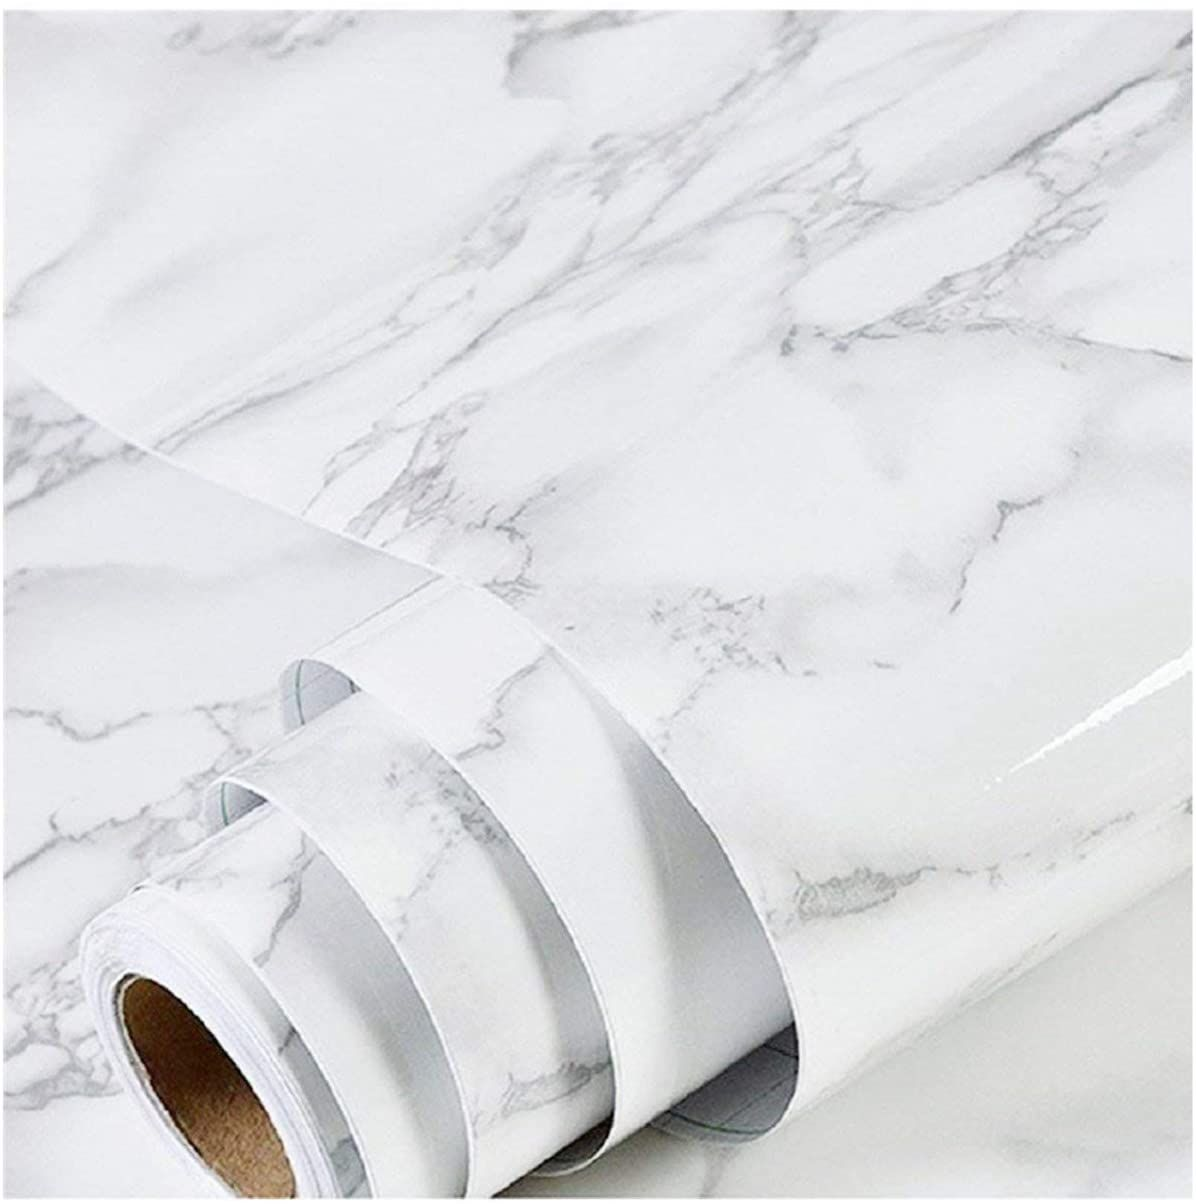 Marble Removable Wallpaper In 2021 Marble Wallpaper Thick Wallpaper Diy Marble